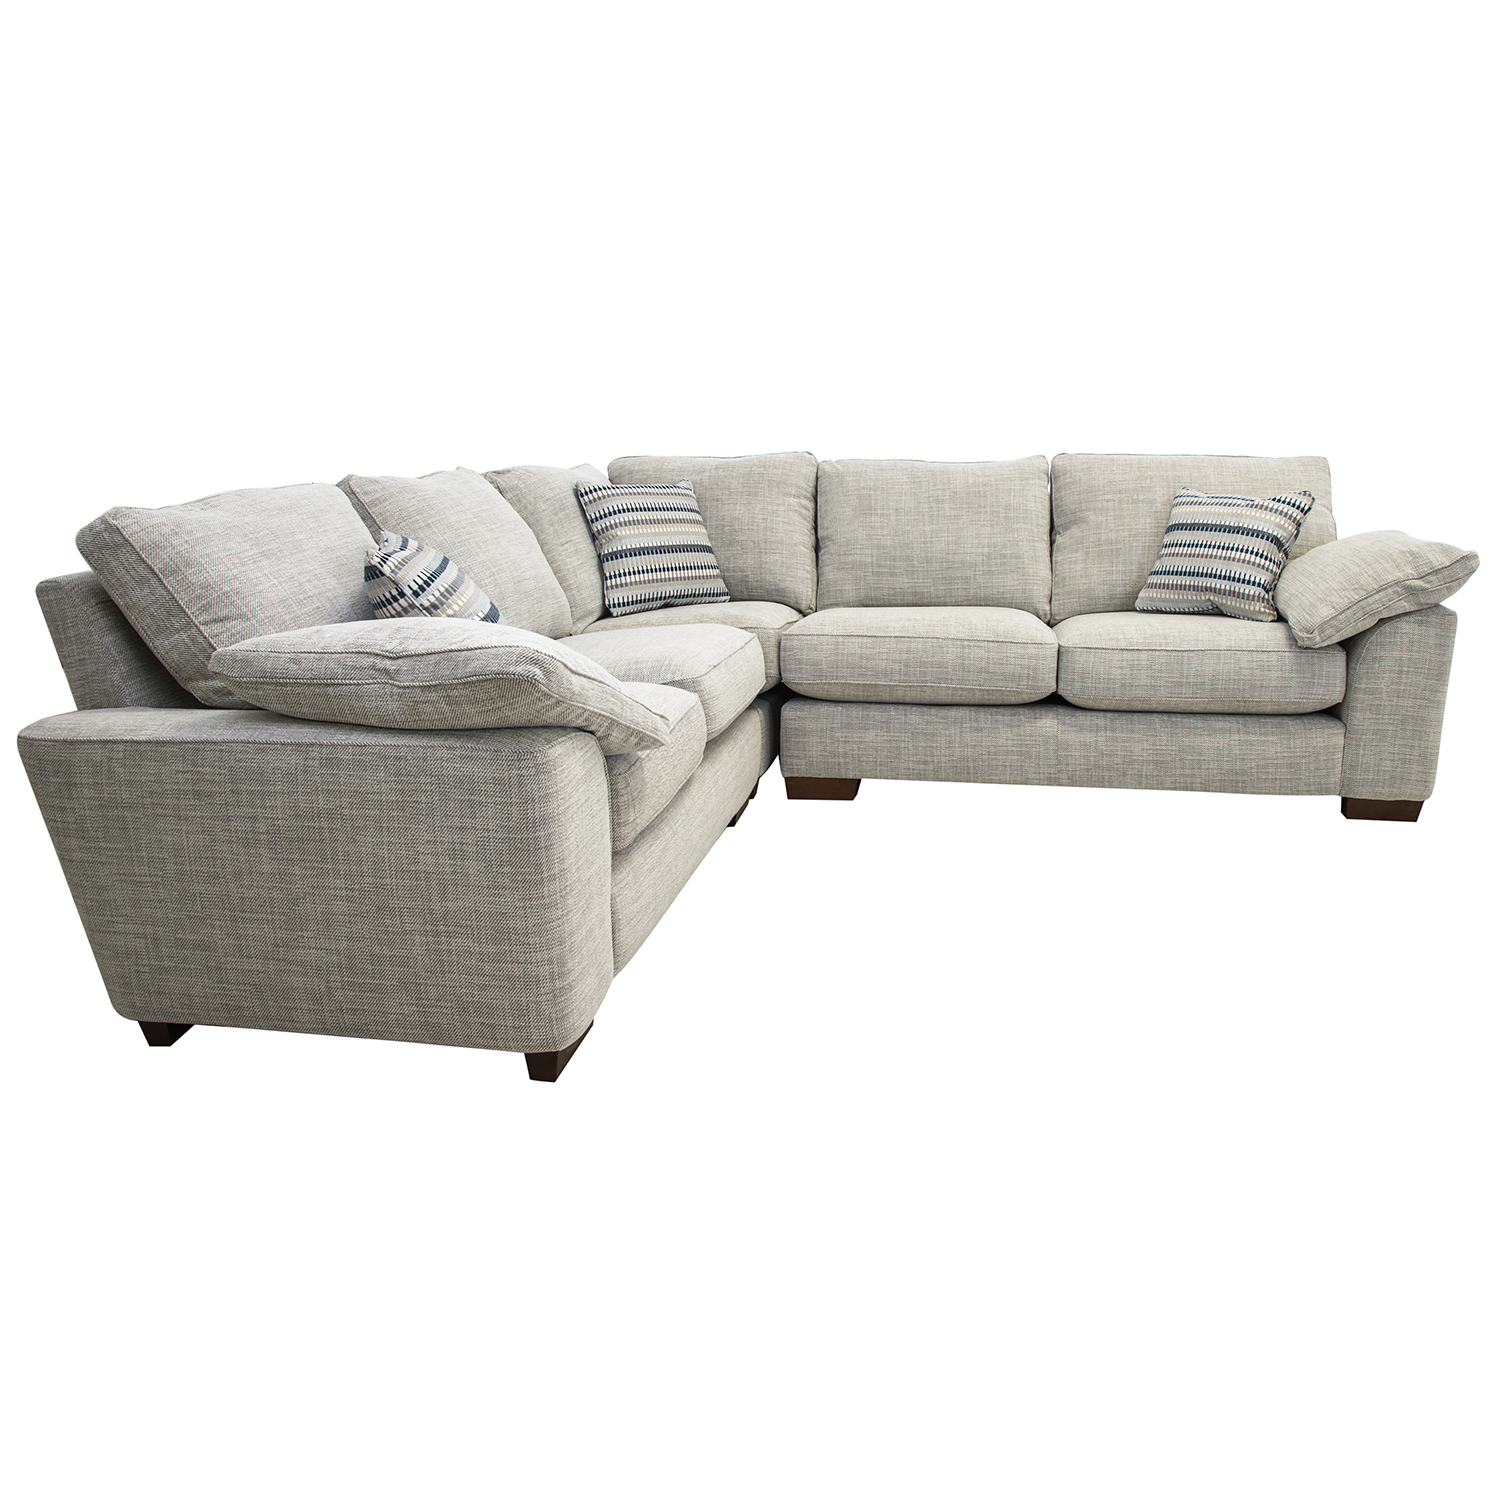 Image of Casa Blaise Corner Fabric Sofa